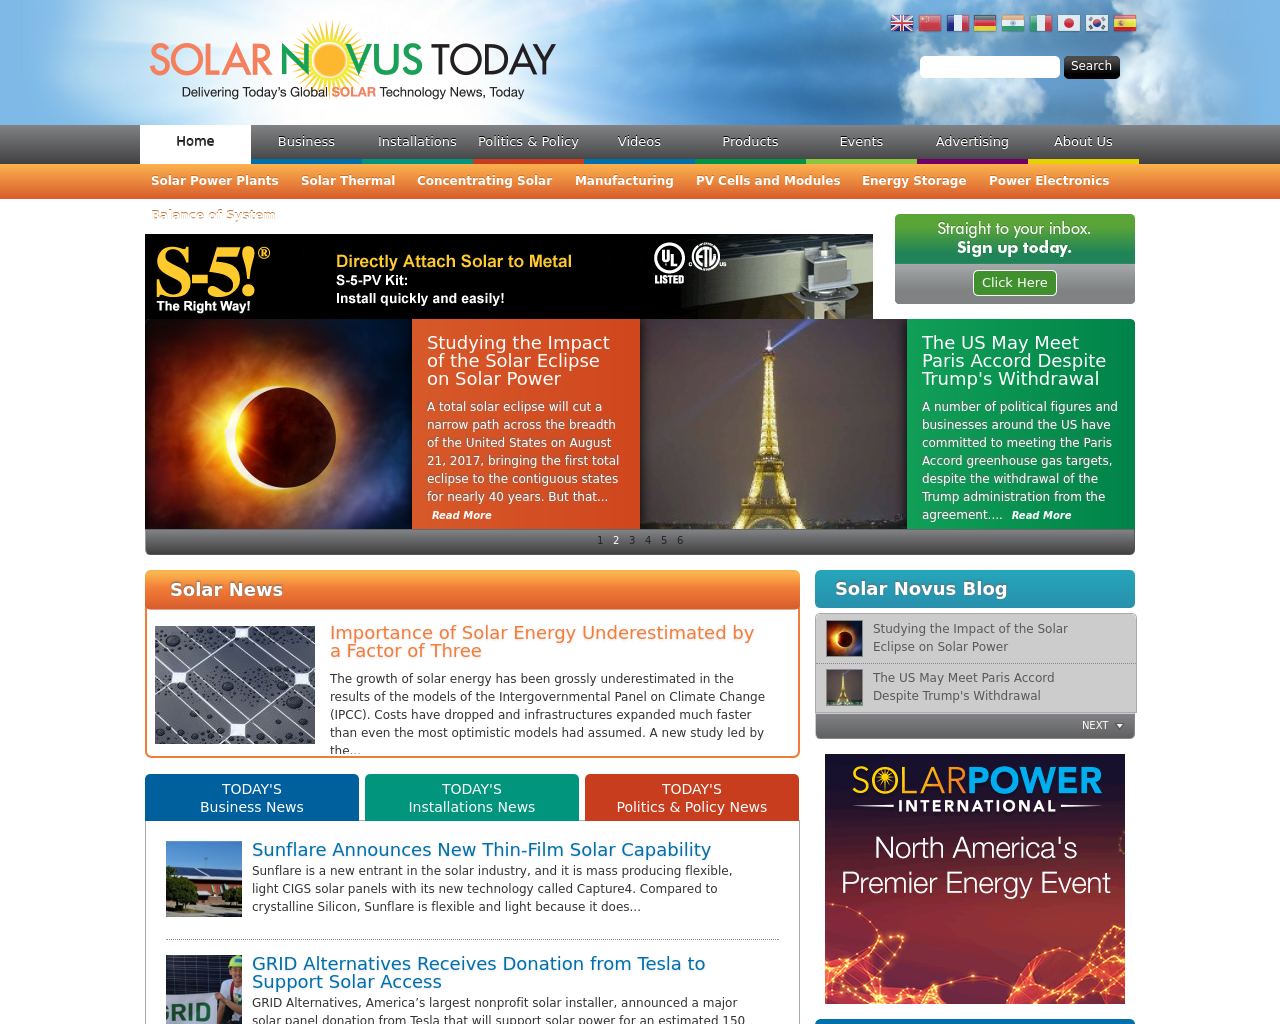 Solar-Novus-Today-Advertising-Reviews-Pricing